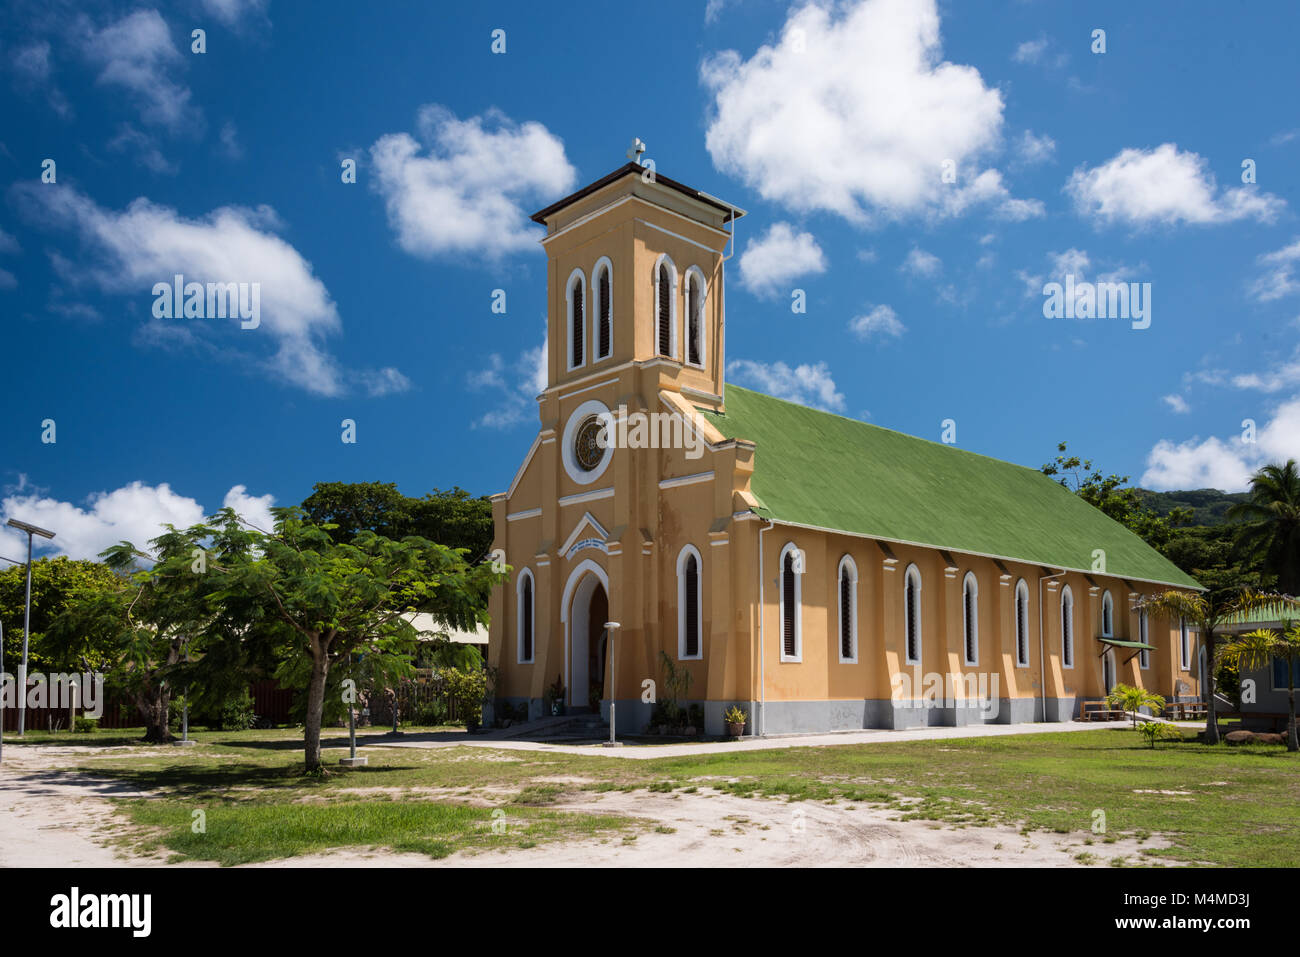 Community Church, La Digue, Seychelles - Stock Image